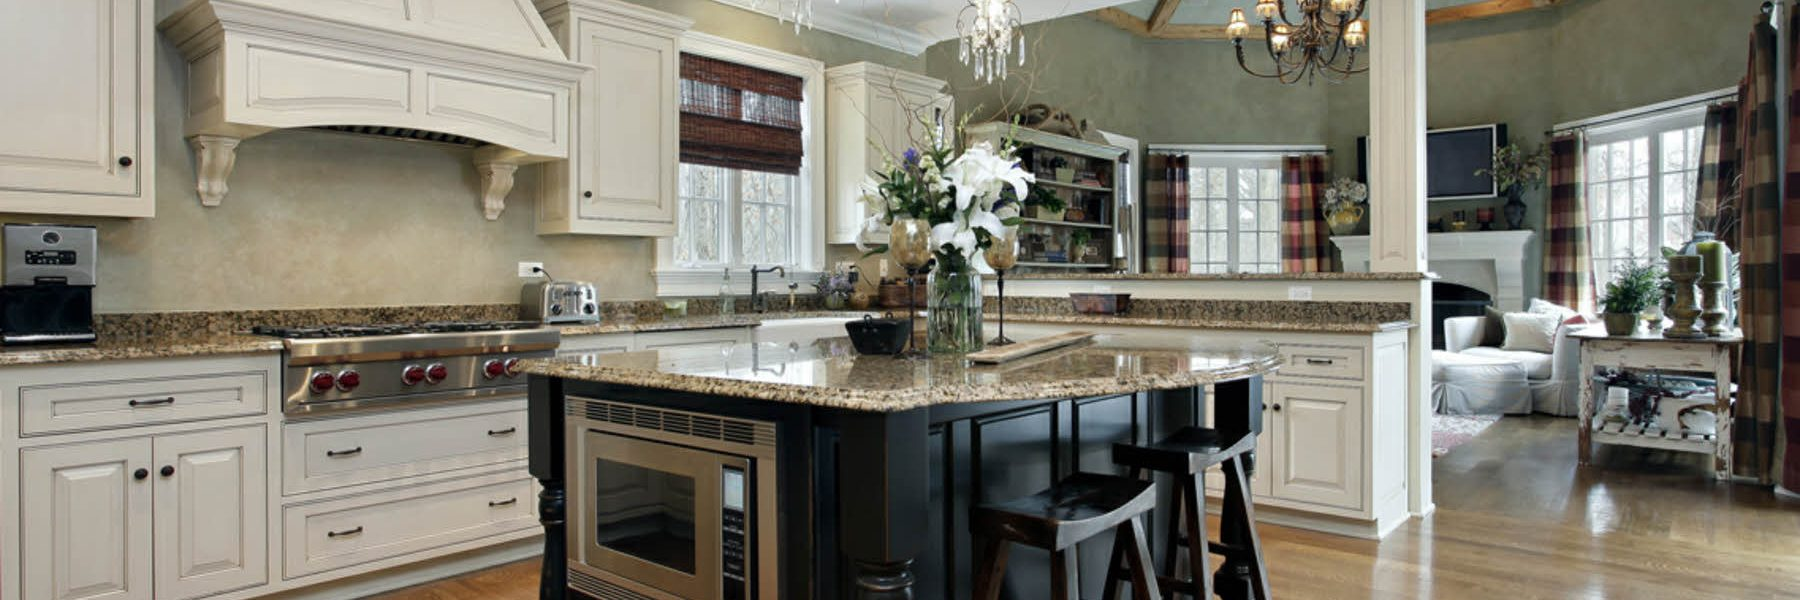 home cleaning services grimsargh